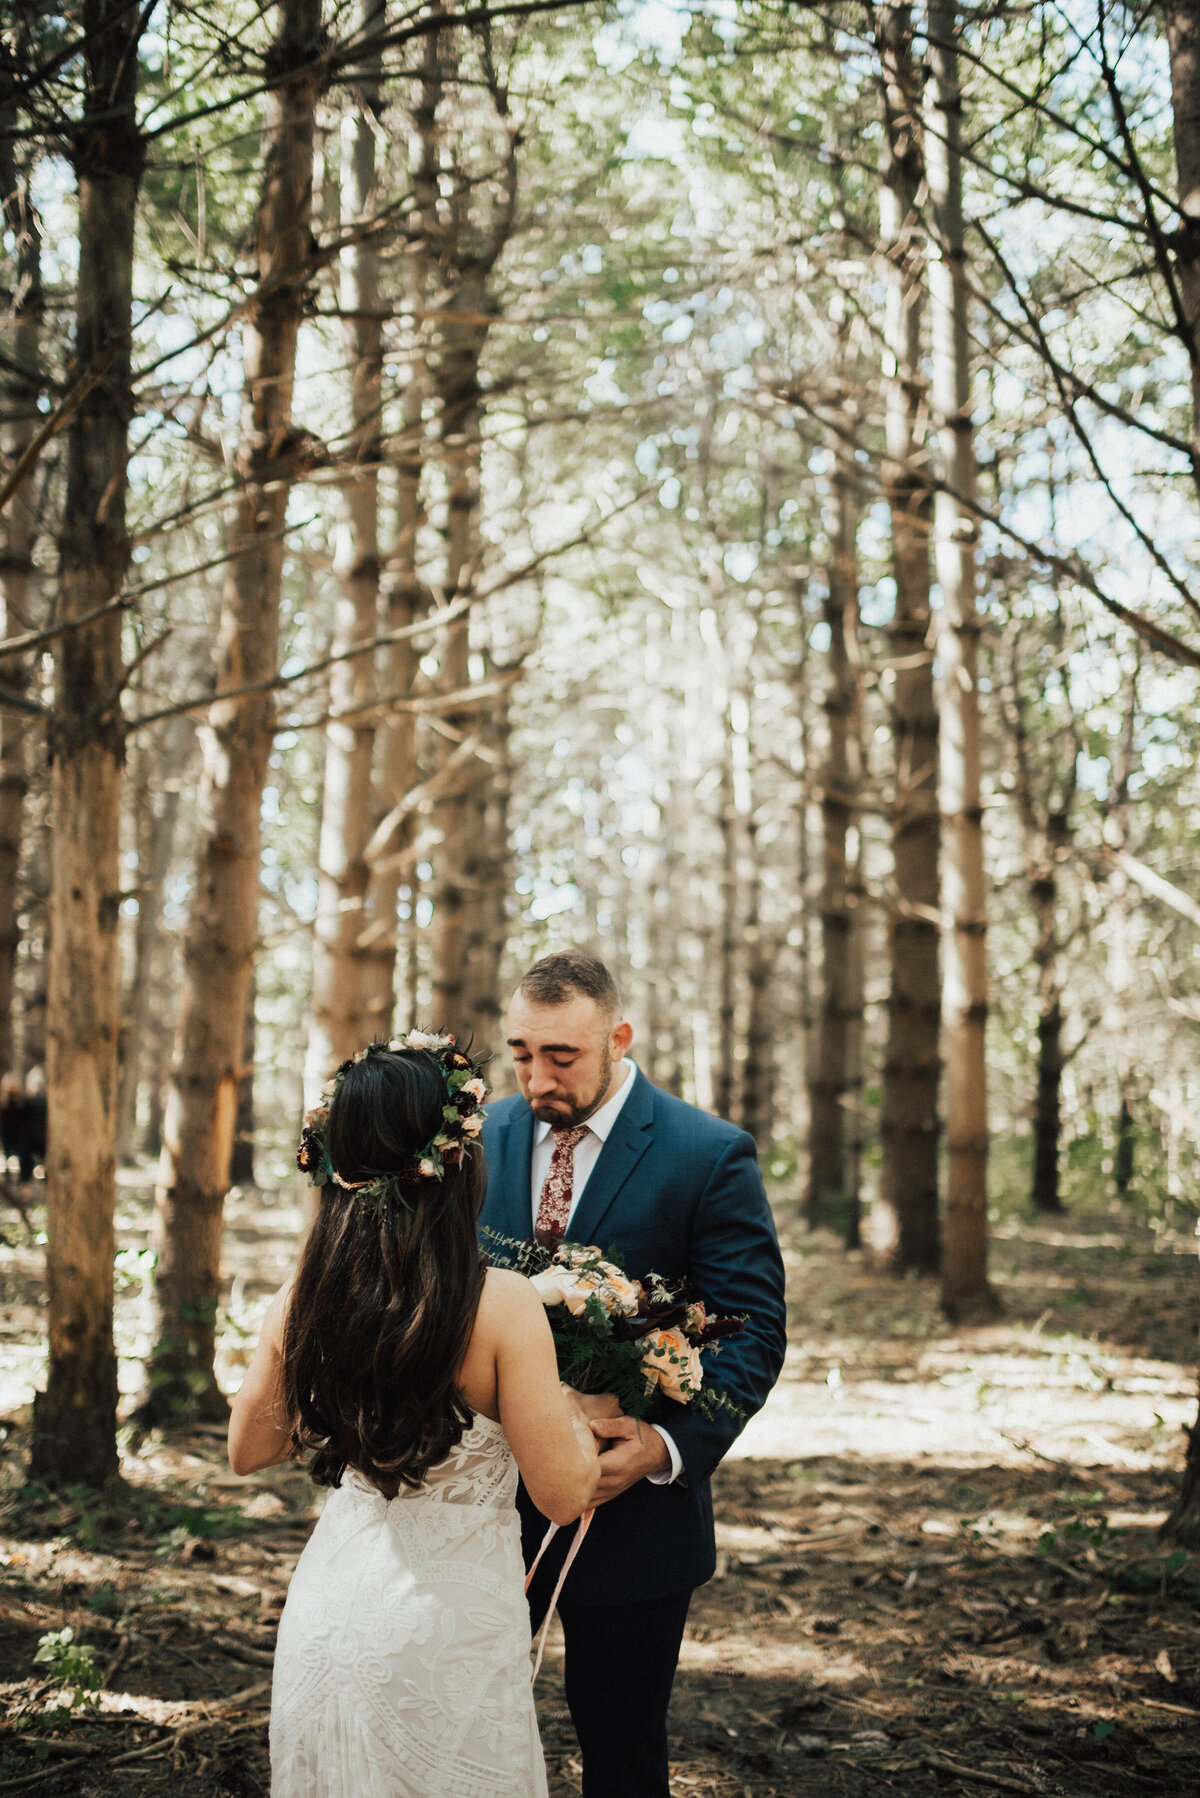 Bridal Path Weddings and Events | Mallory and Sam Wedding Gallery